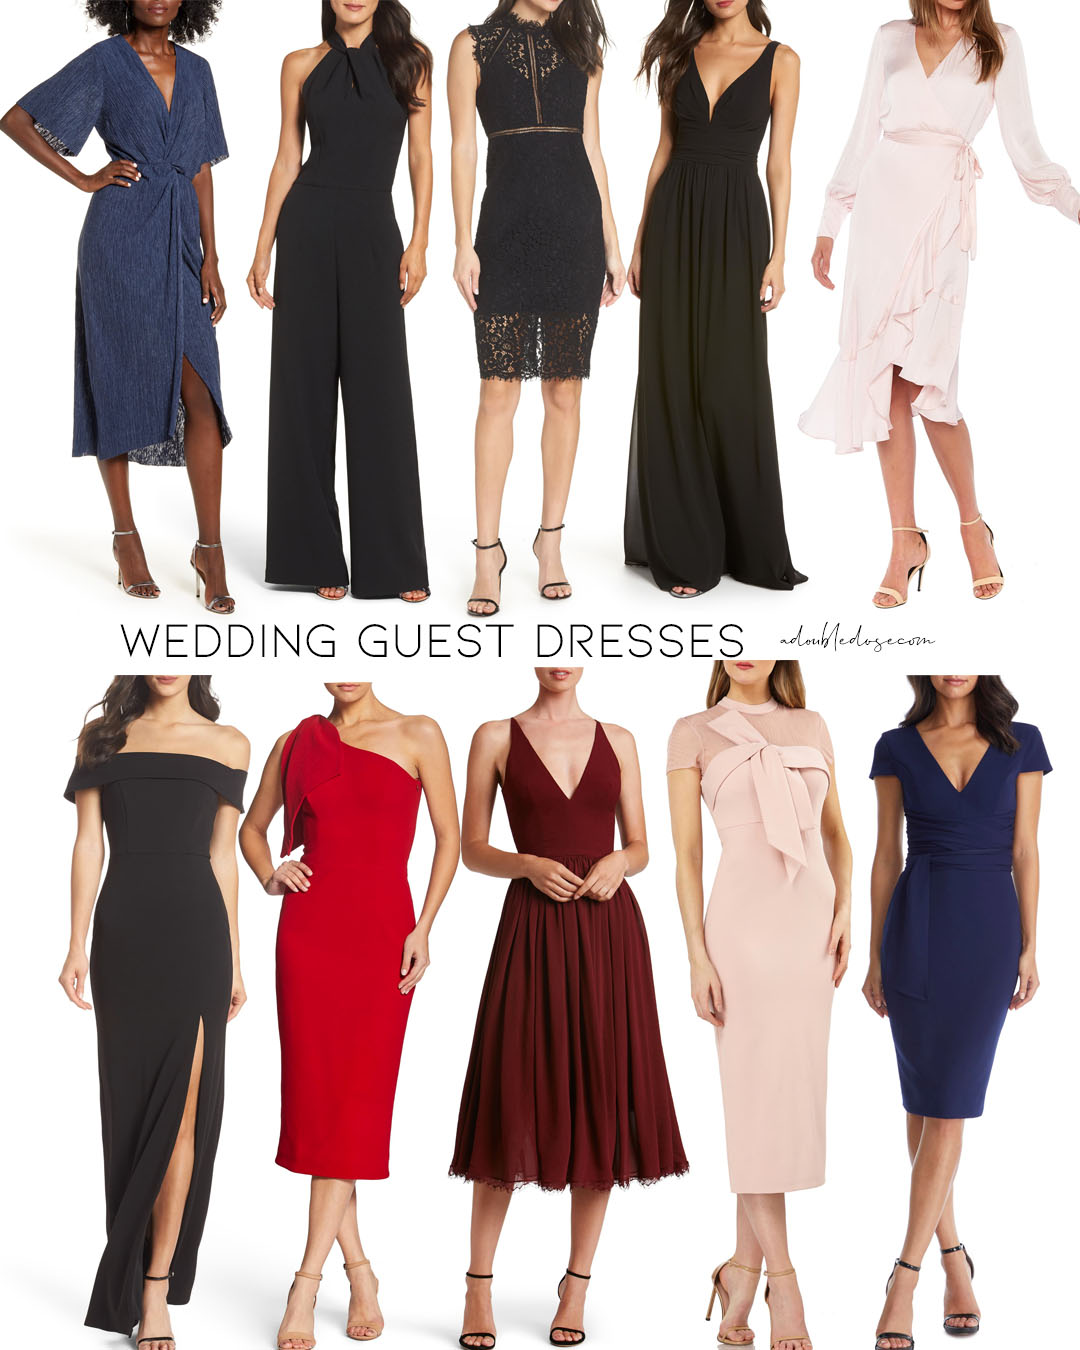 lifestyle and fashion blogger alexis and samantha belbel sharing their roundup of fall wedding guest dresses for weddings in 2020 cocktail and shorter lengths